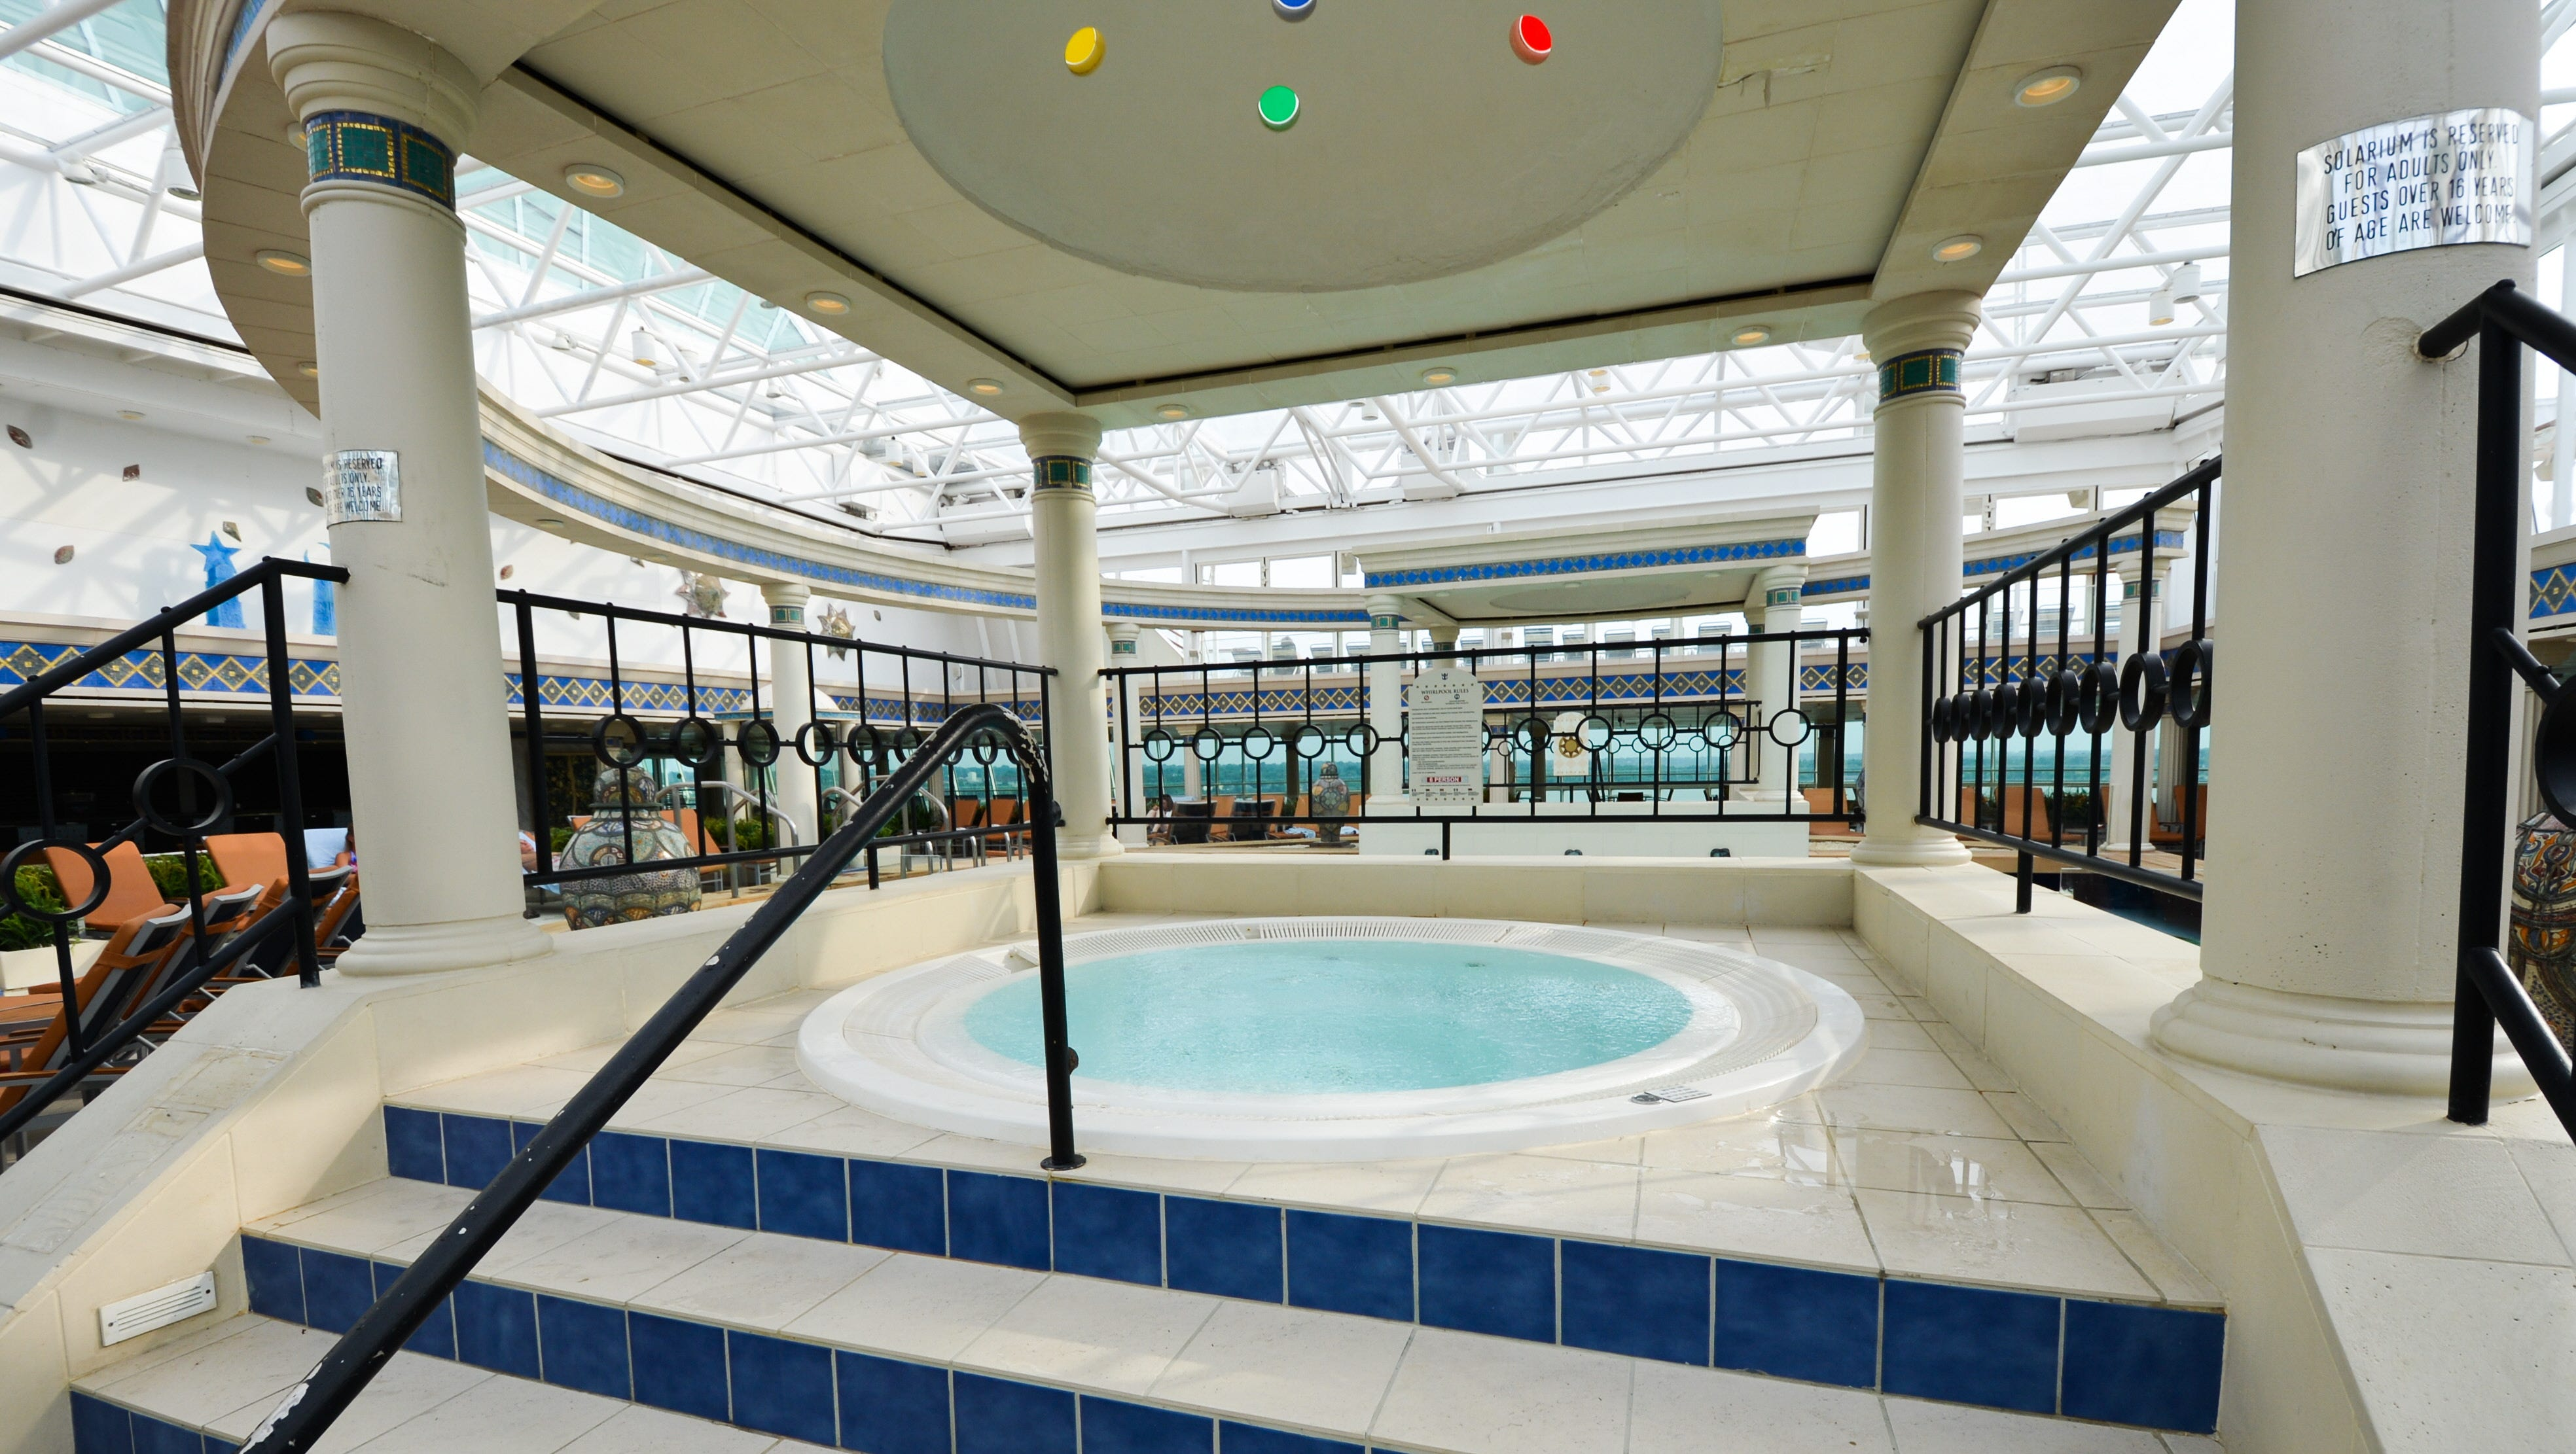 The Solarium features two hot tubs.